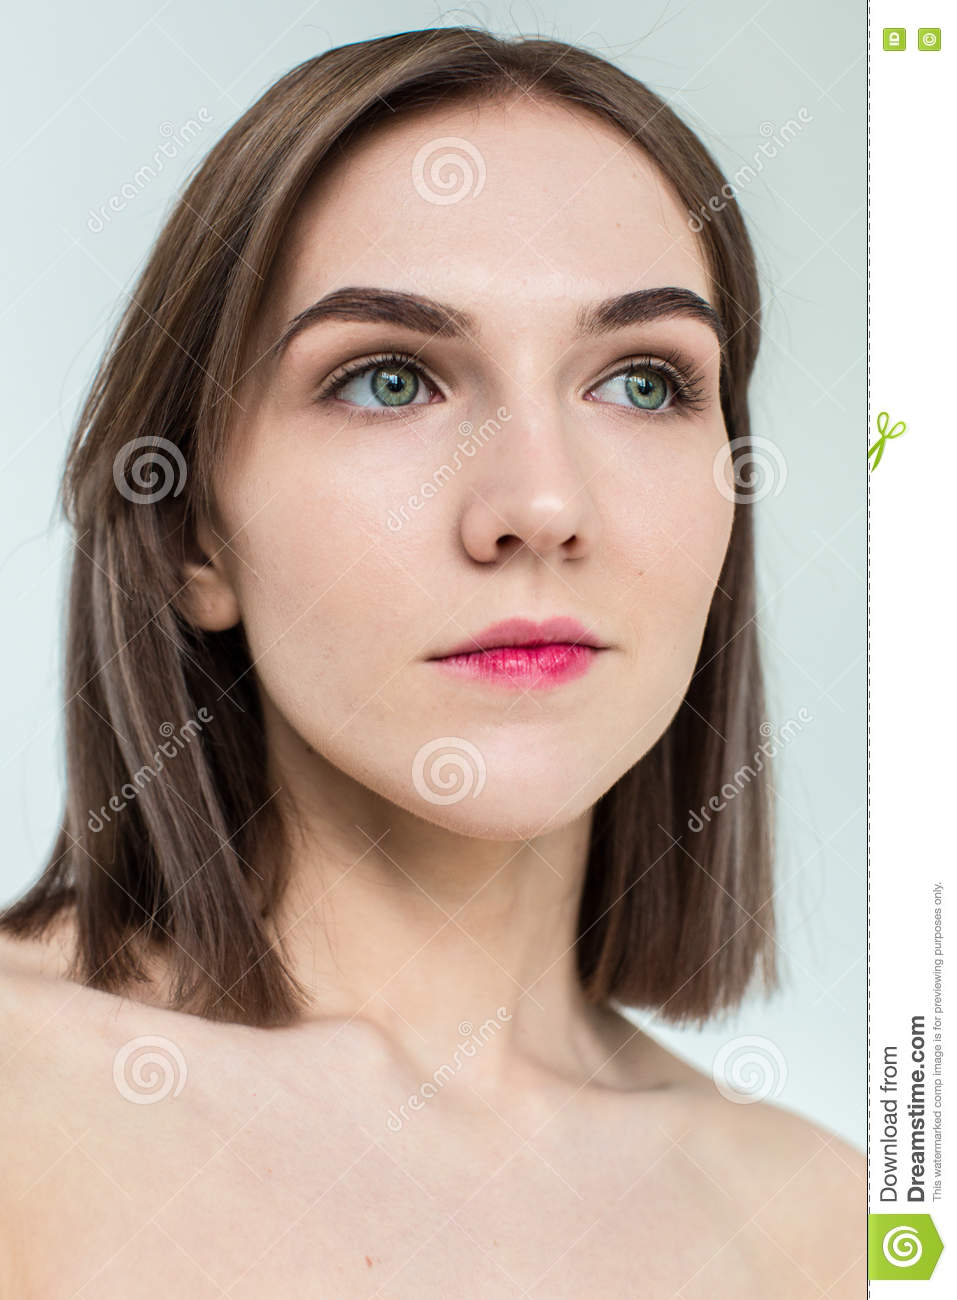 young nude model Beauty portrait of young model with middle length hair. Professional nude  makeup